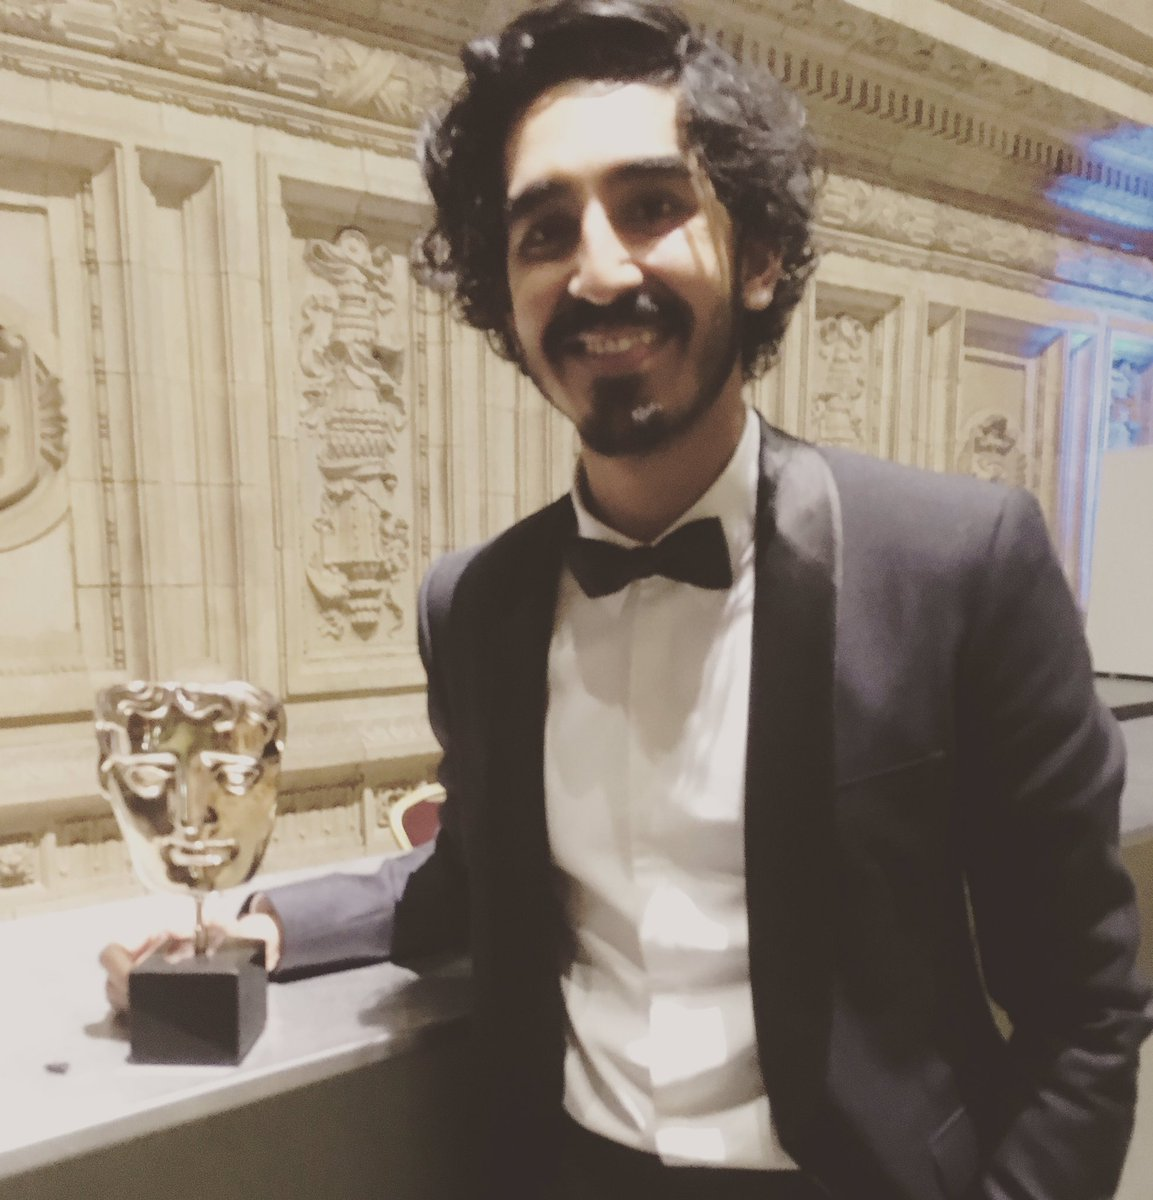 From Harrow to BAFTA glory, via Slumdog: The rise and rise of west London's Dev Patel